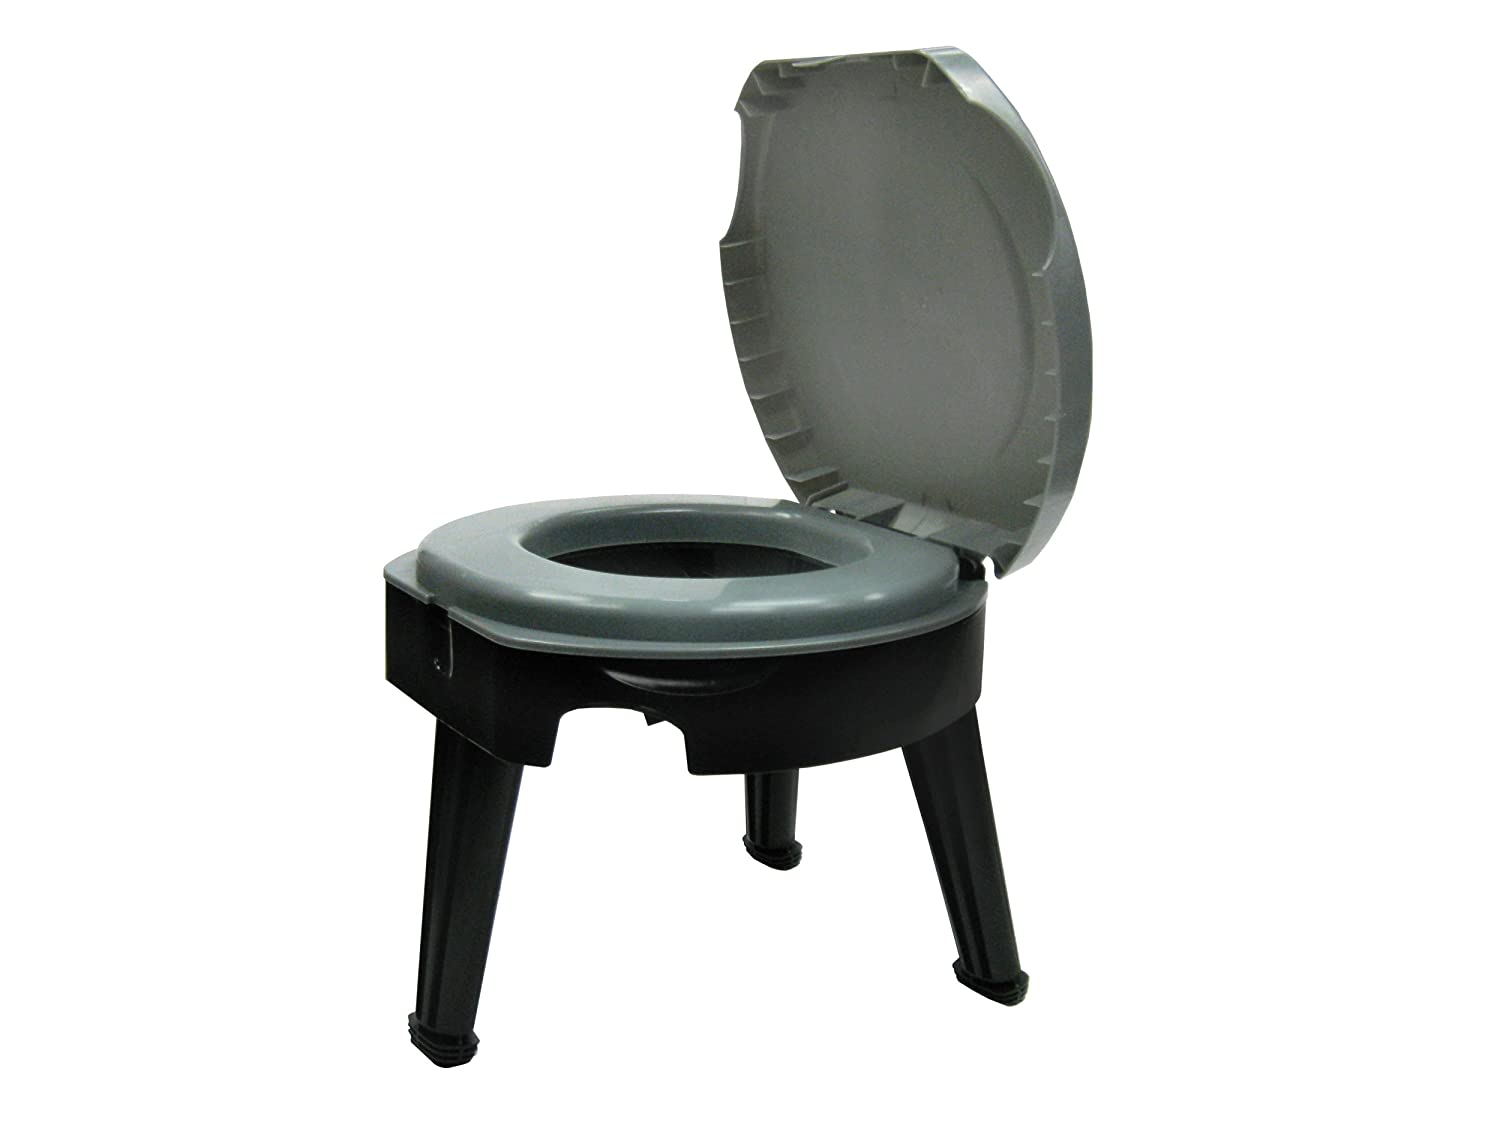 Best portable folding toilet - Reliance Fold-To-Go Portable Toilet